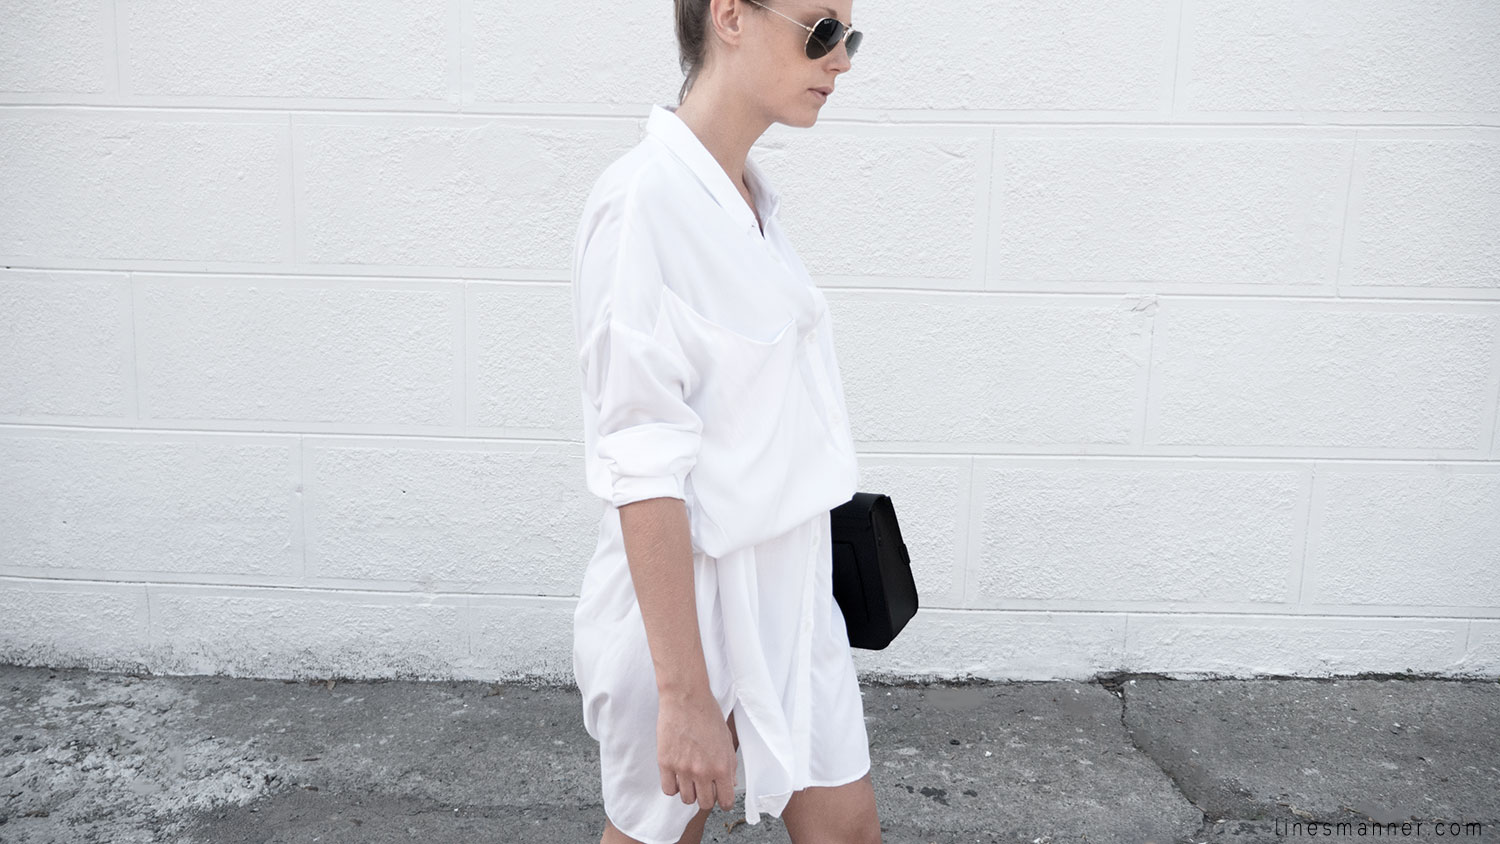 Lines-Manner-Whiteout-Fashion-Minimal-Clean-Fresh-Brigthly-All_White-Monochrome-Immaculate-Trend-Style-Sleek-Slouchy-Details-White_Shirt-Transeasonal-Dressing-Outfit-6